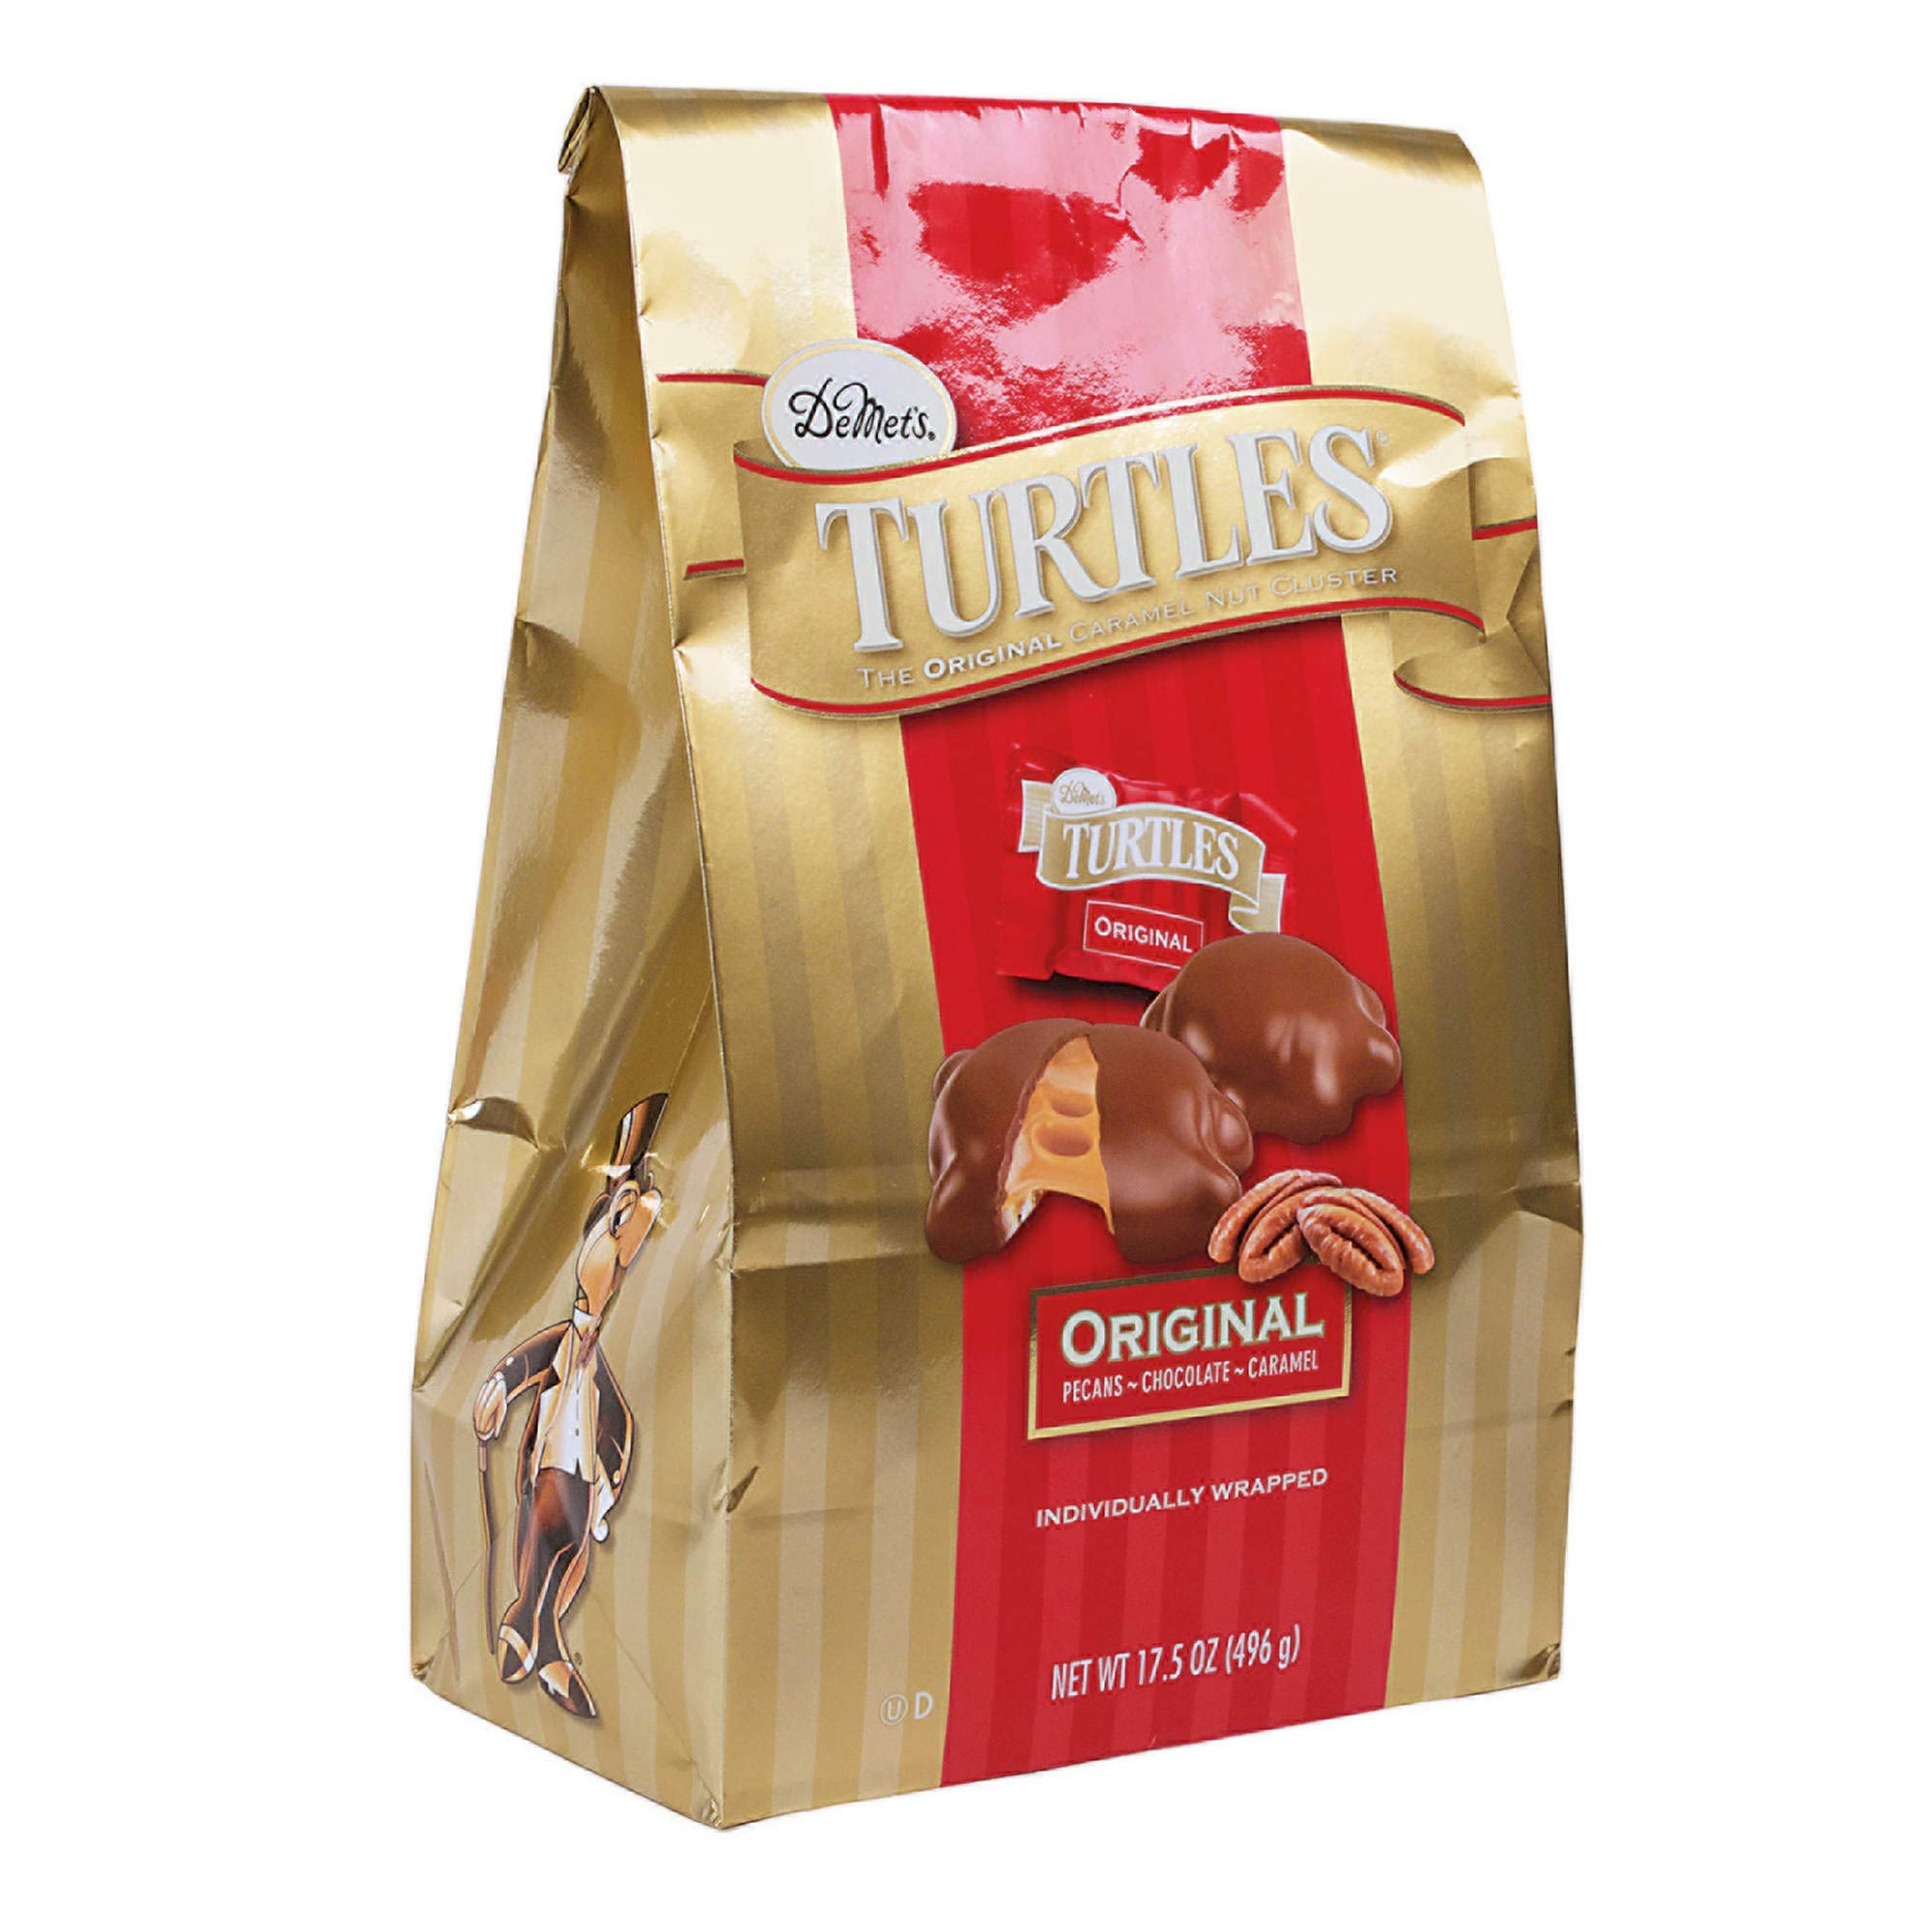 Demet's Original Turtles, 35 OZ (2.18 Pound)